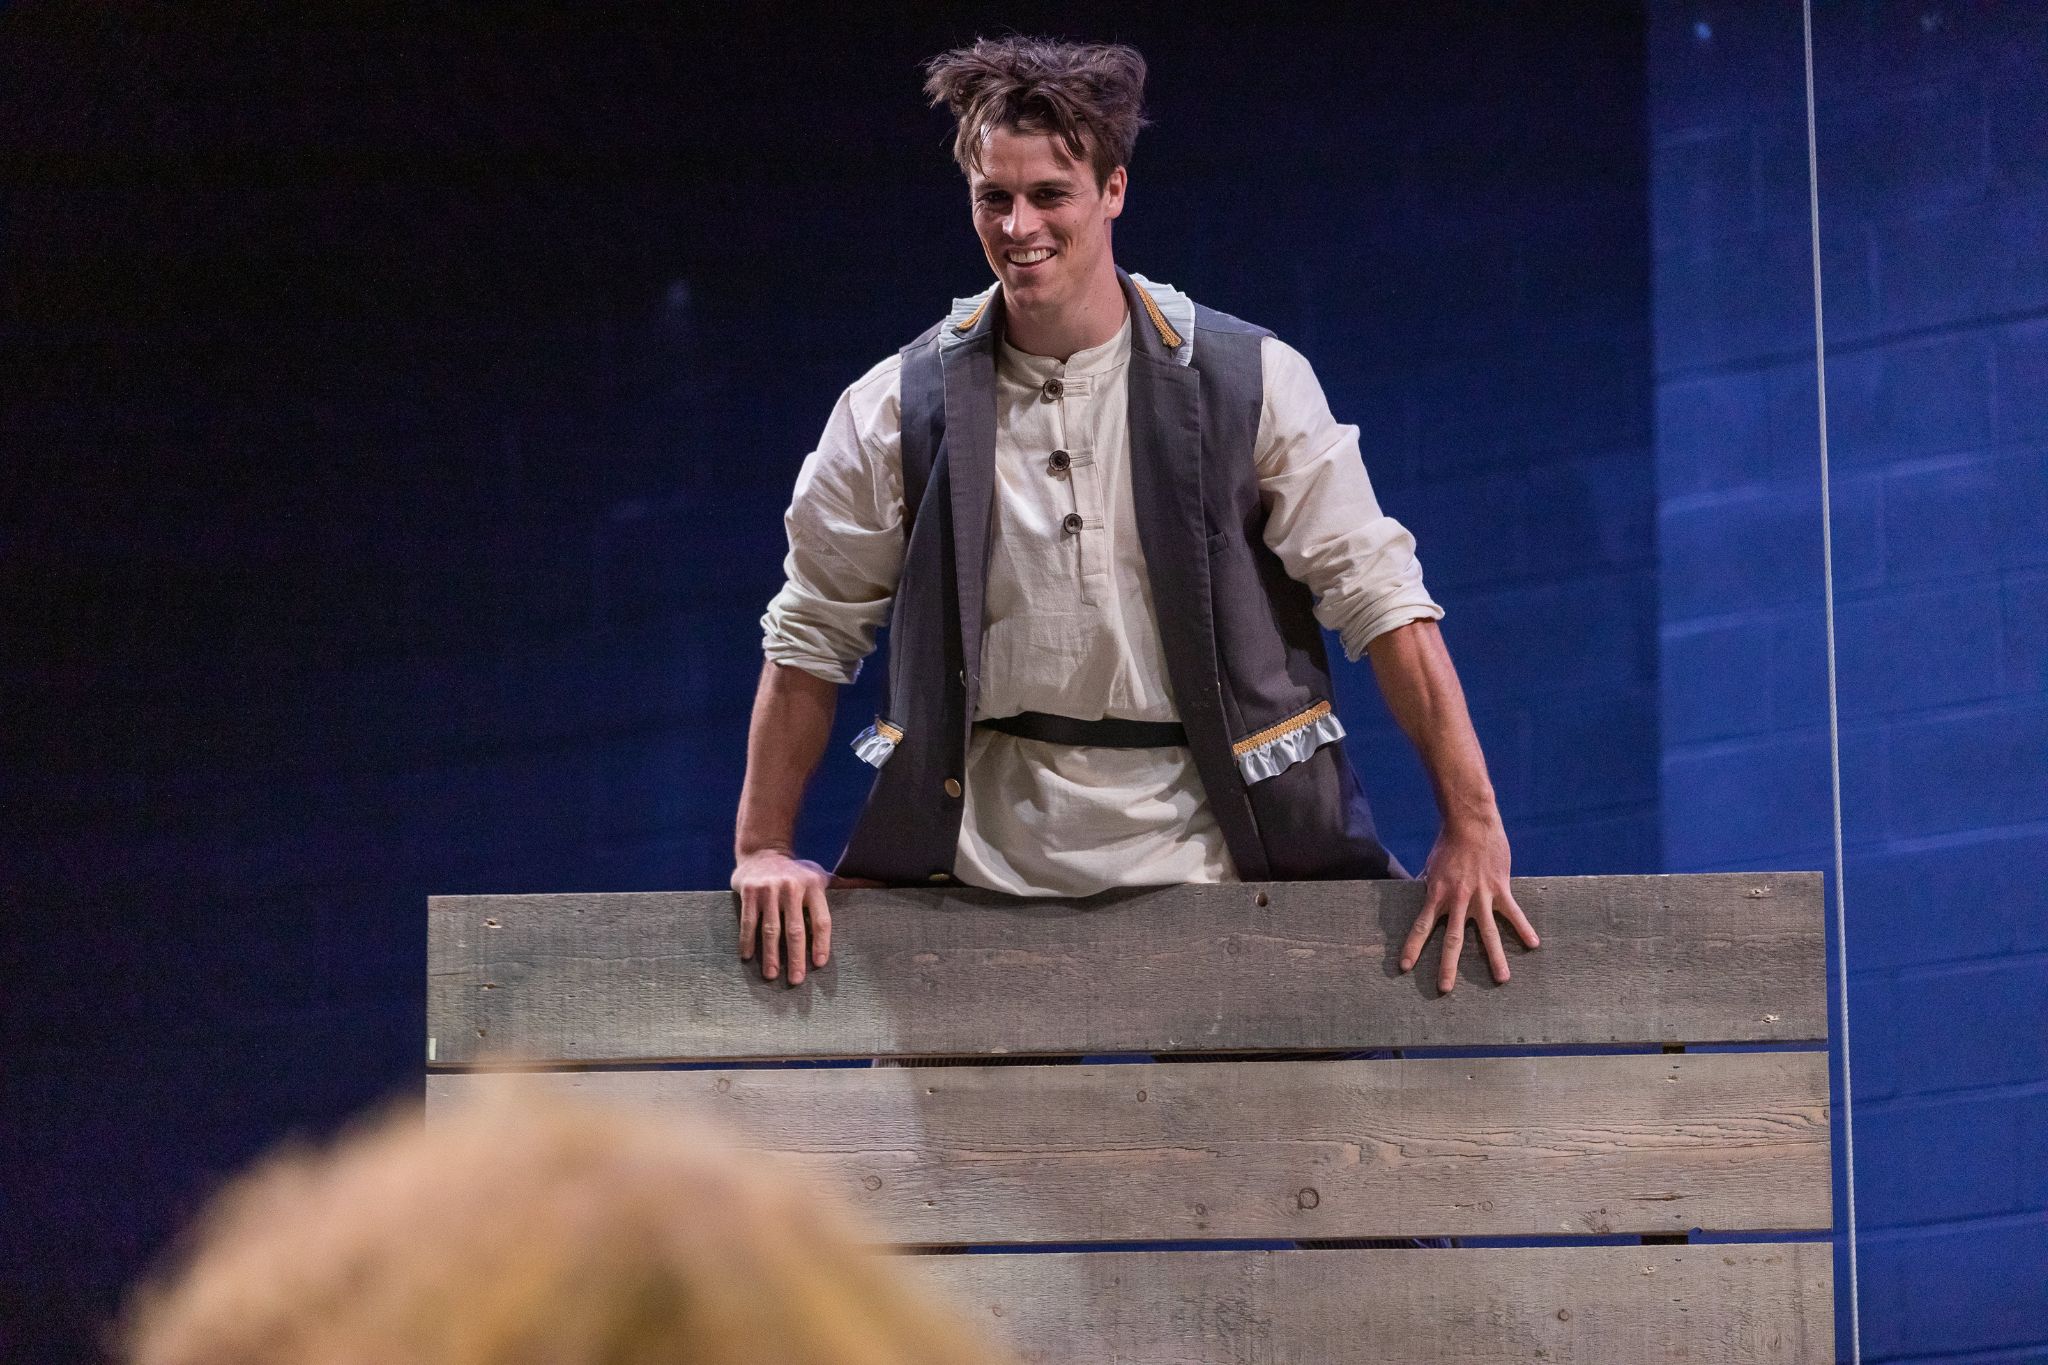 Michael Underhill (Tybalt) in Romeo & Juliet, CSC2, 2019-Photo by Nile Hawver